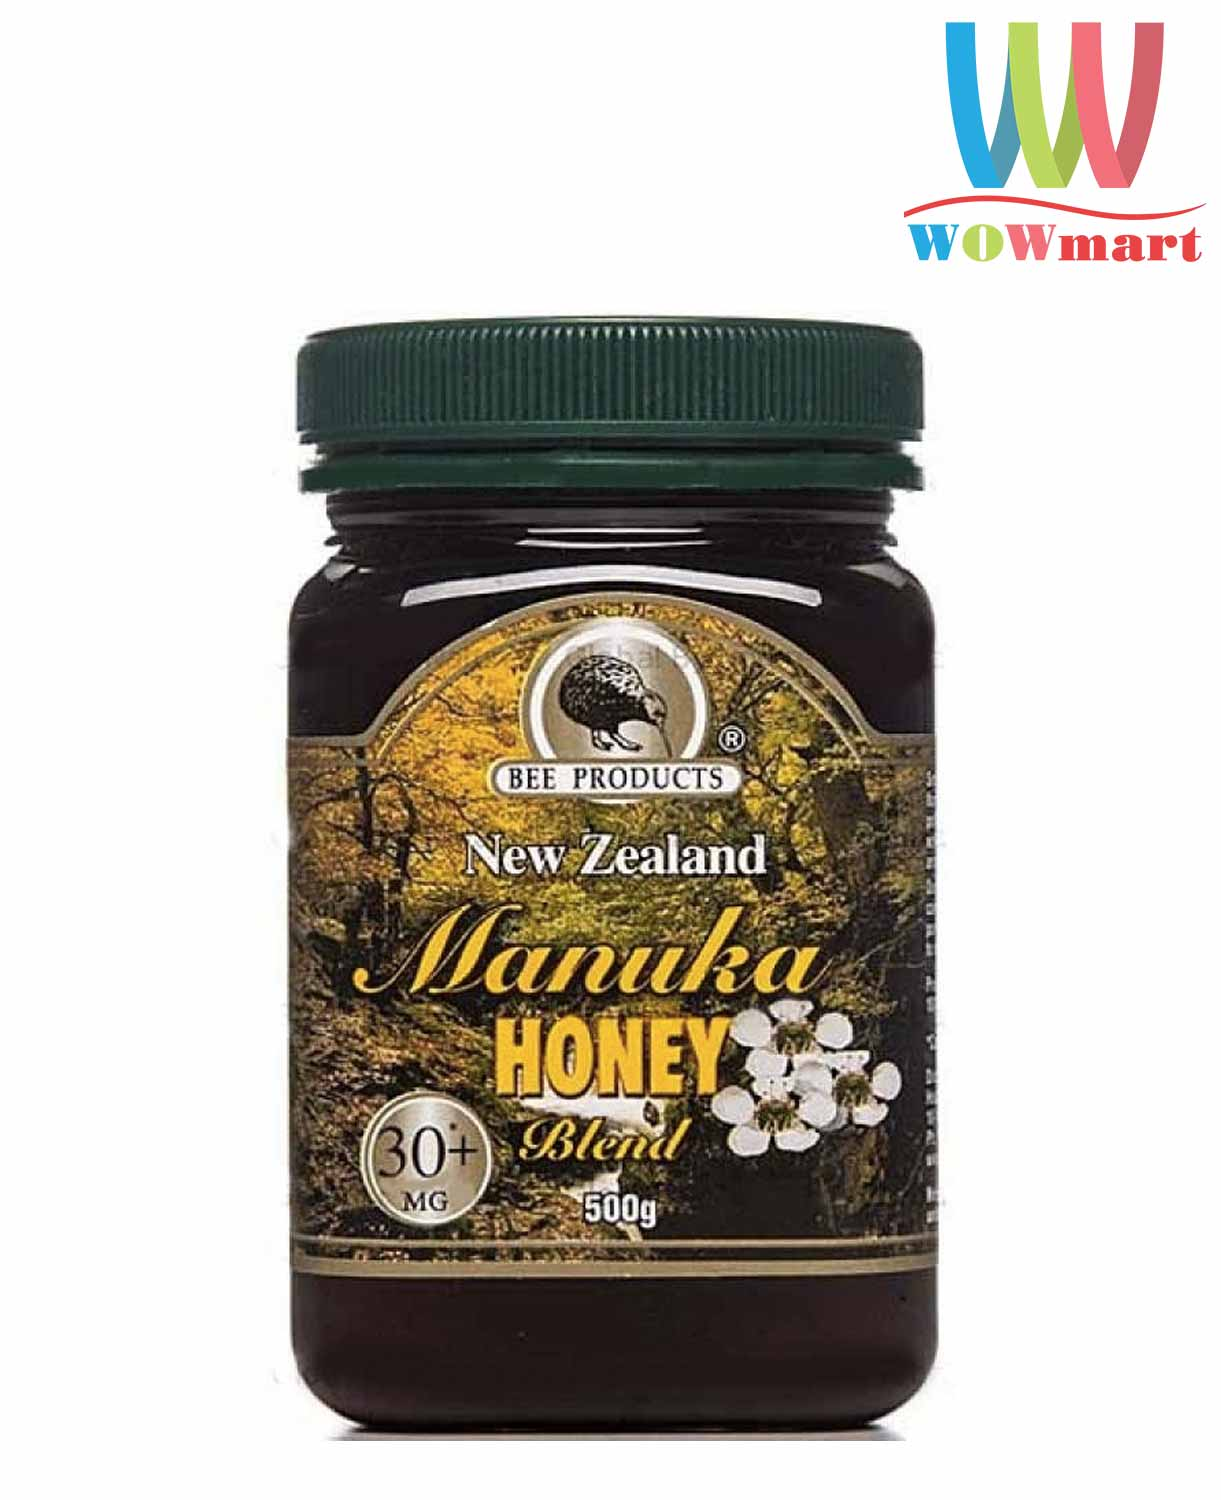 mat-ong-tu-nhien-nguyen-chat-tu-uc-manuka-honey-blend-30-500g